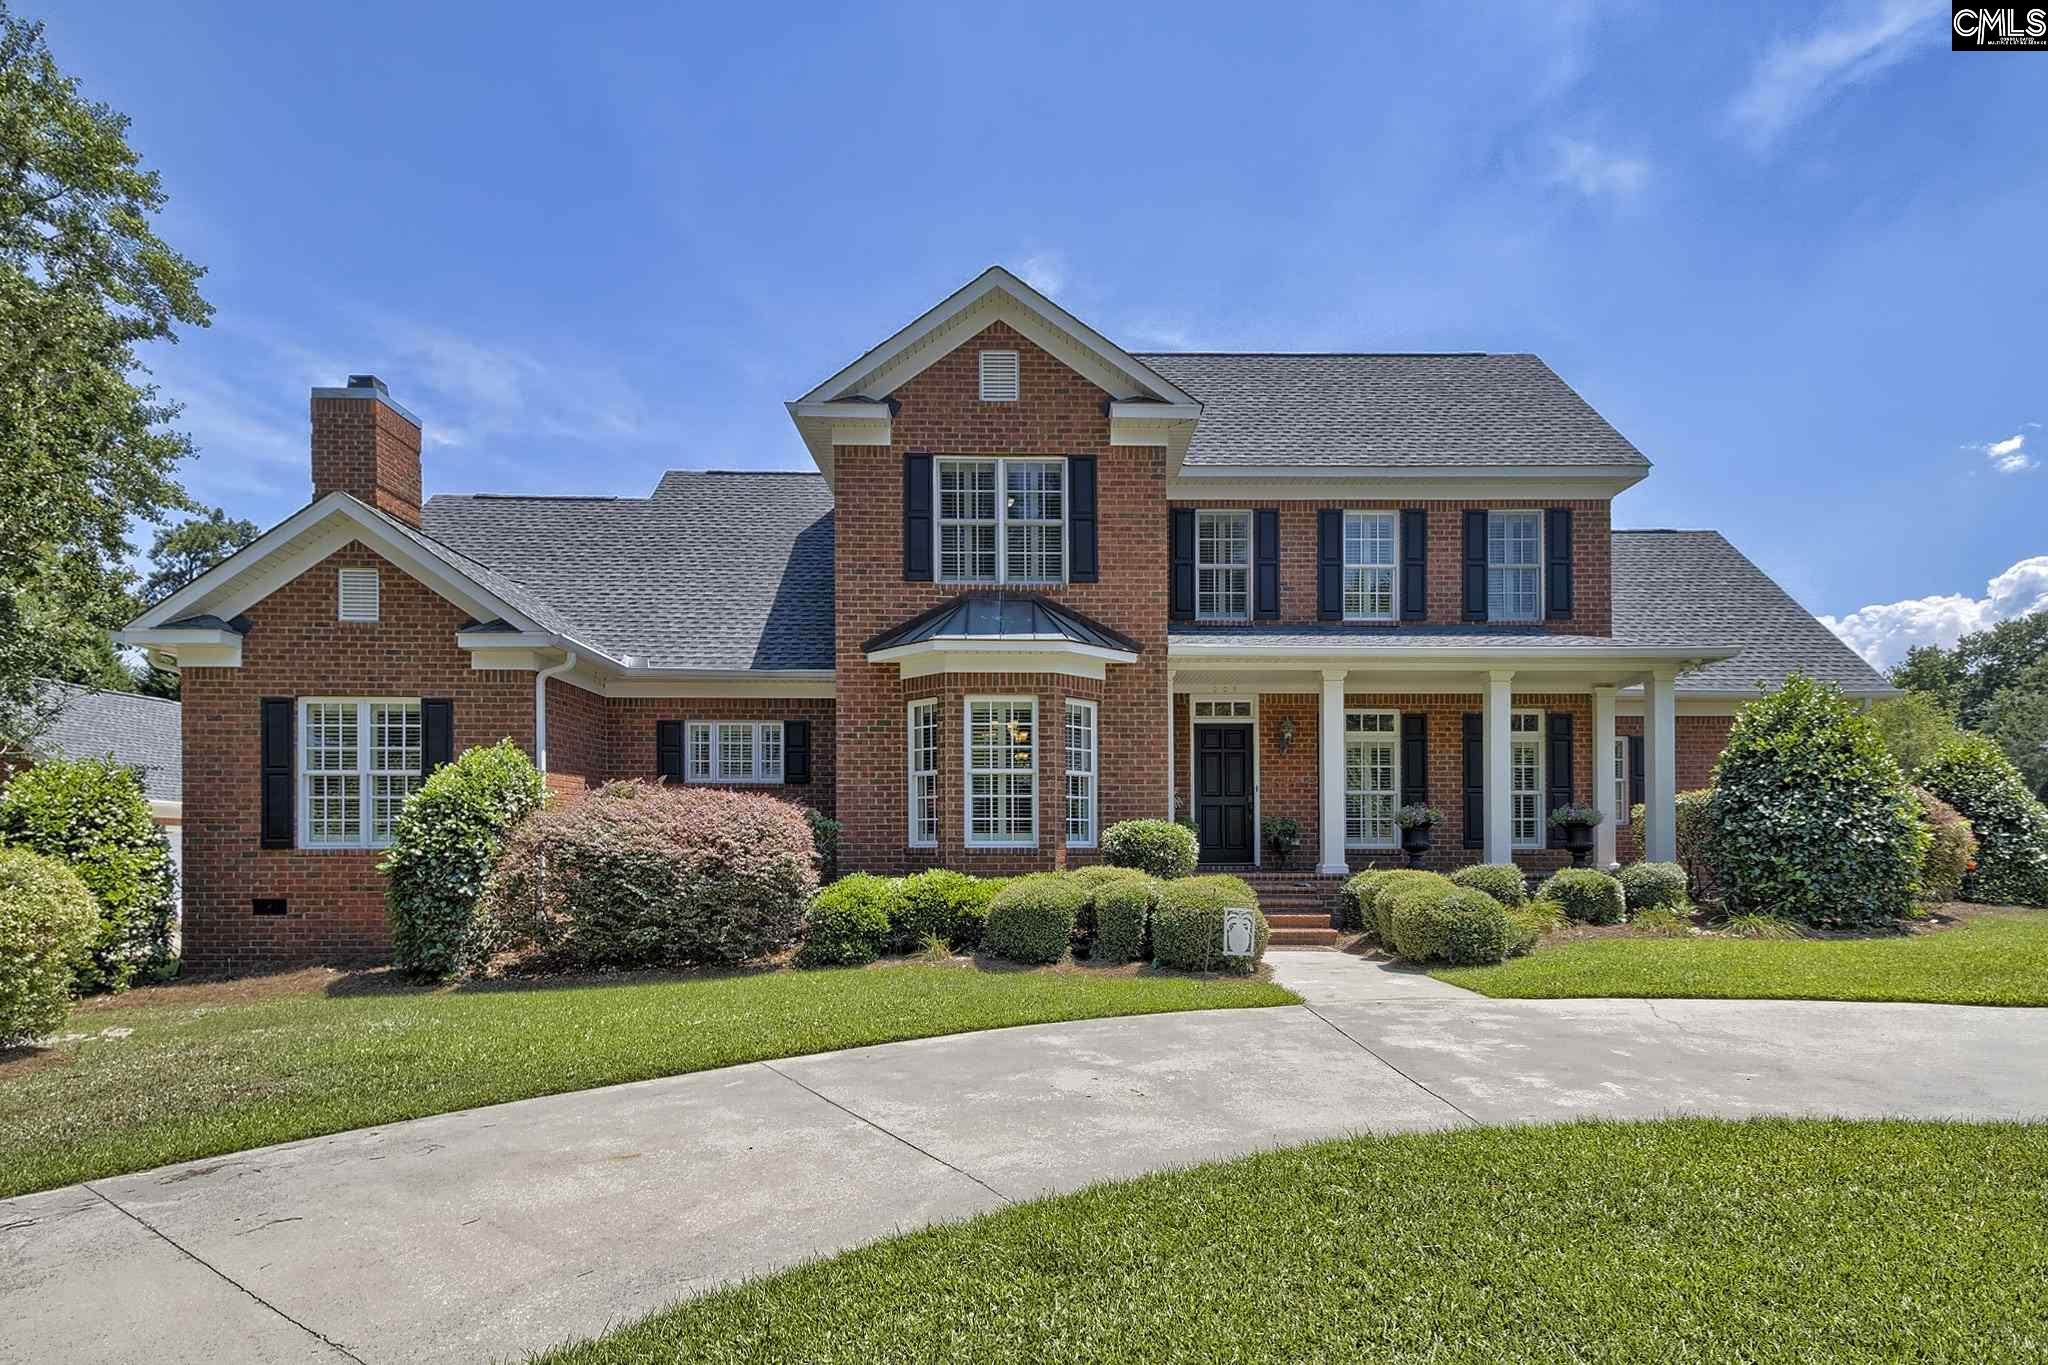 206 Belfry Lexington, SC 29072